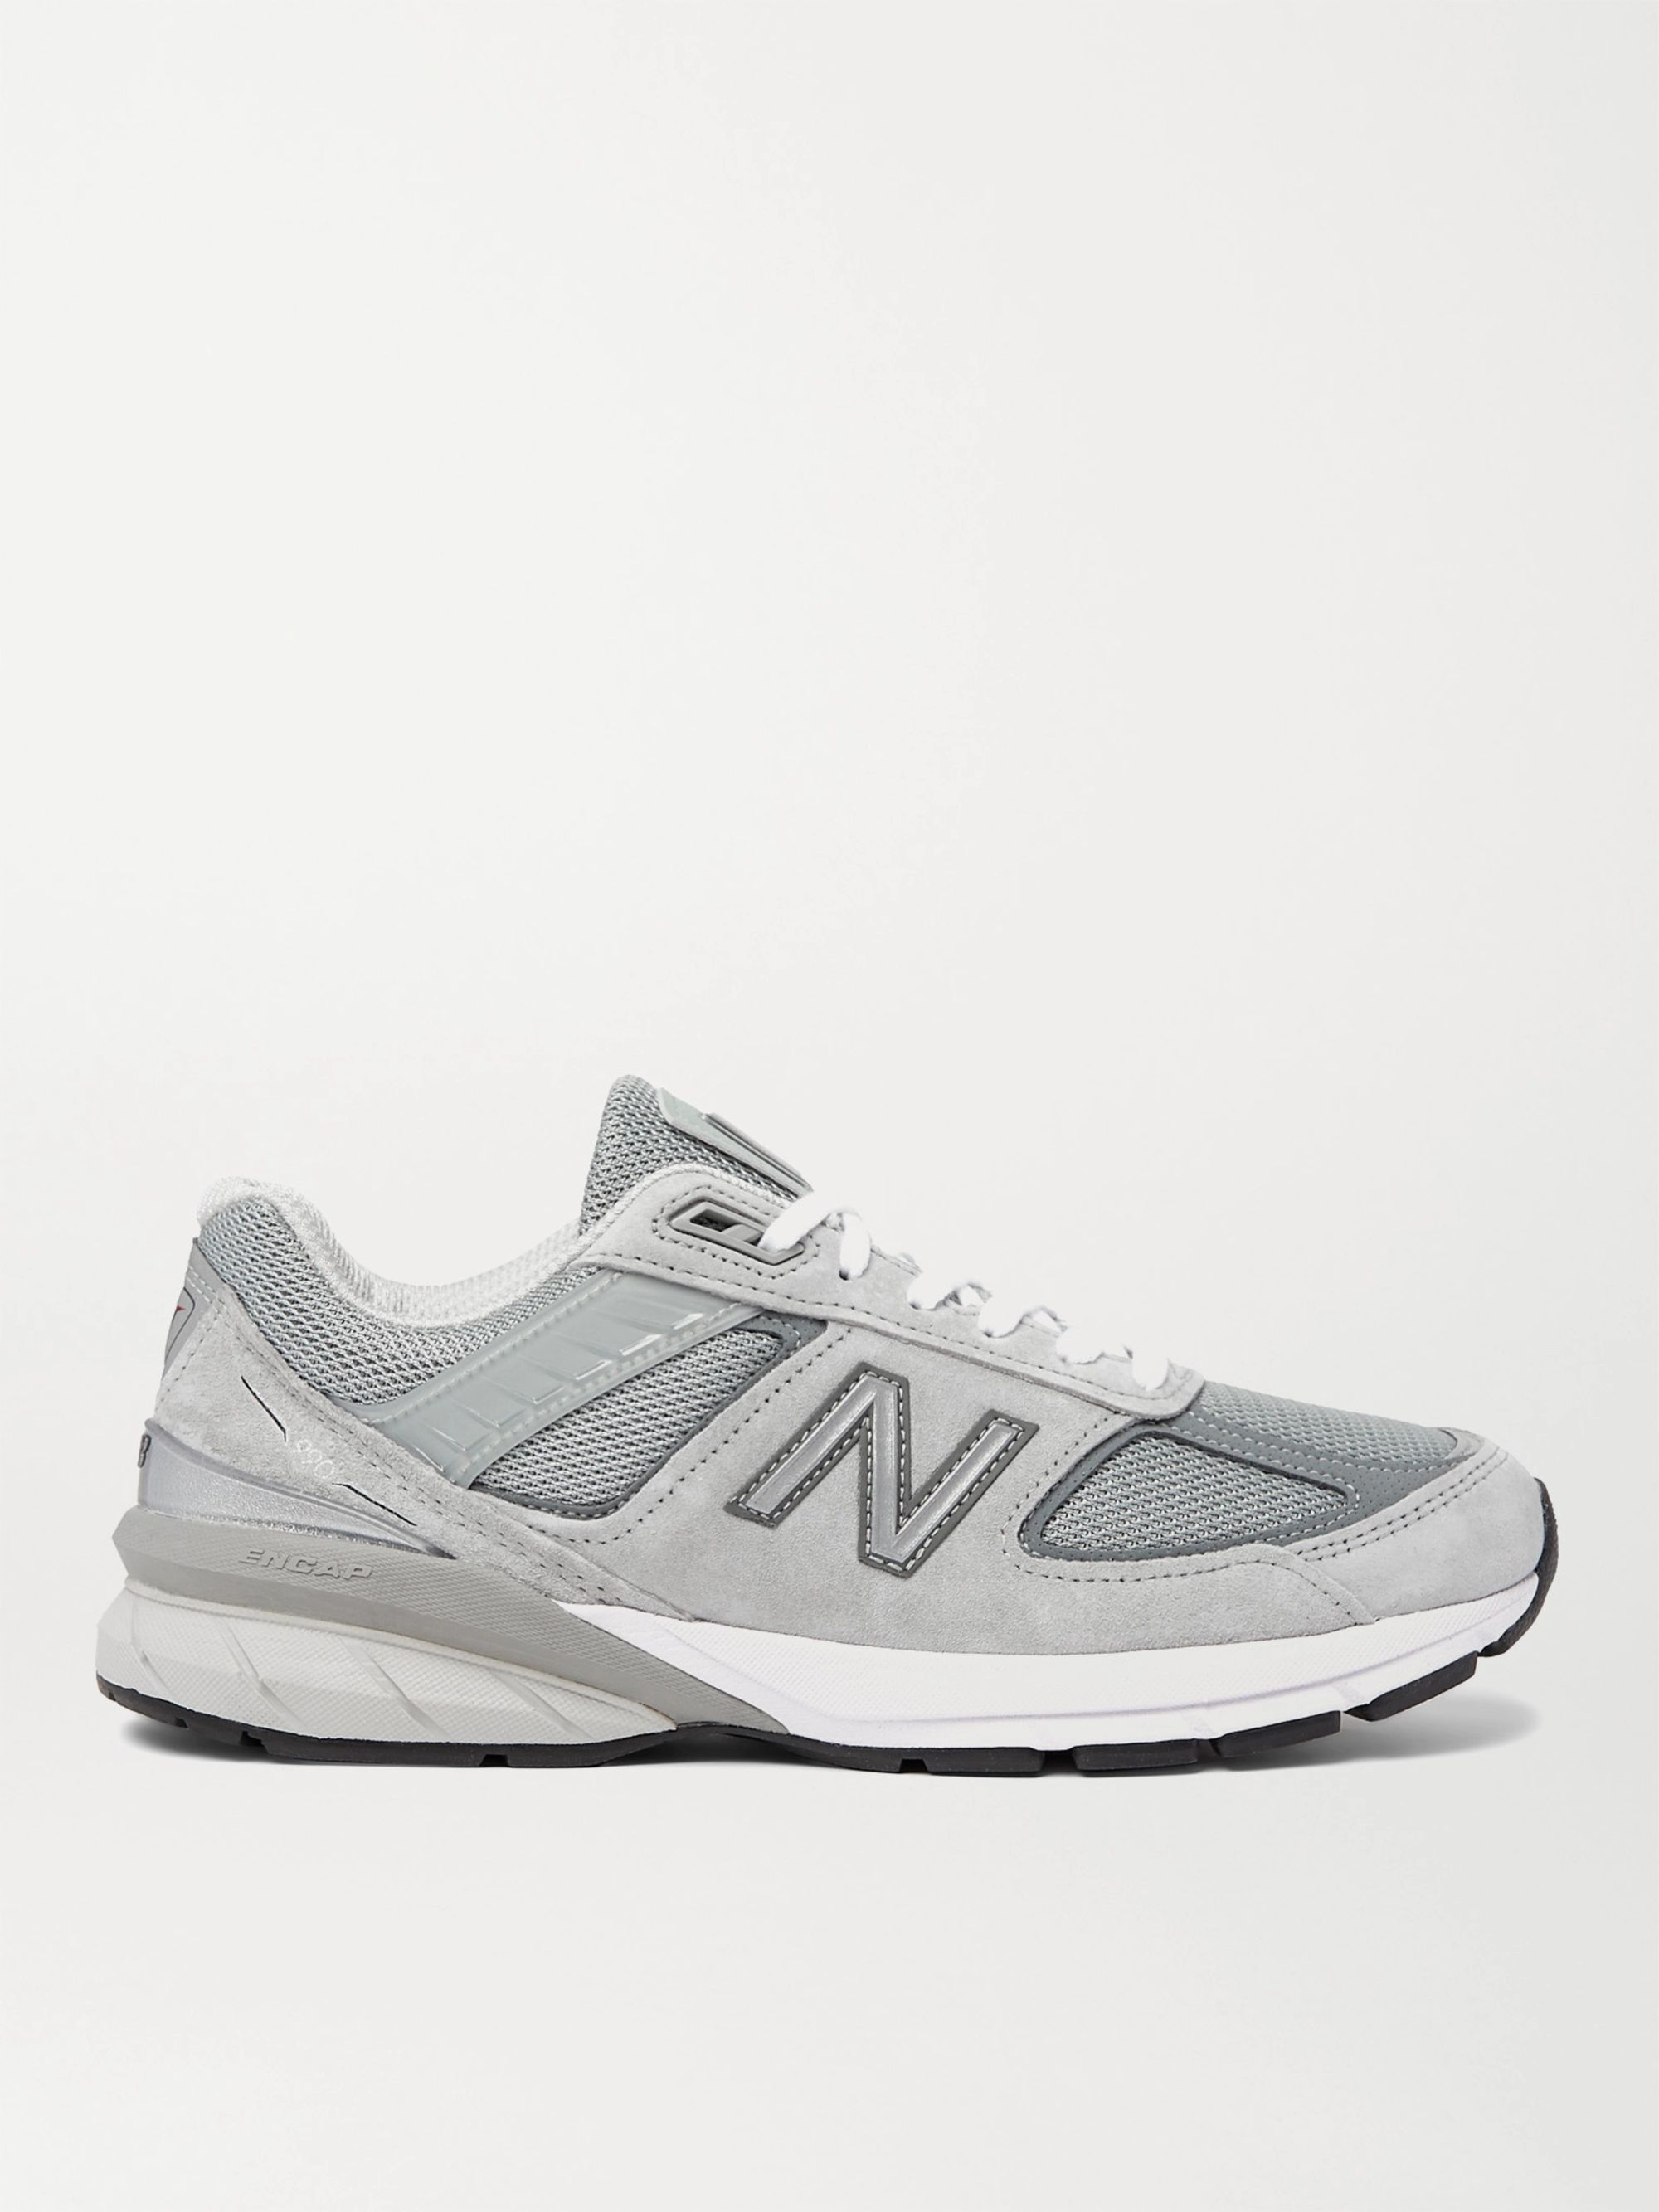 New Balance M990v5 Suede and Mesh Sneakers